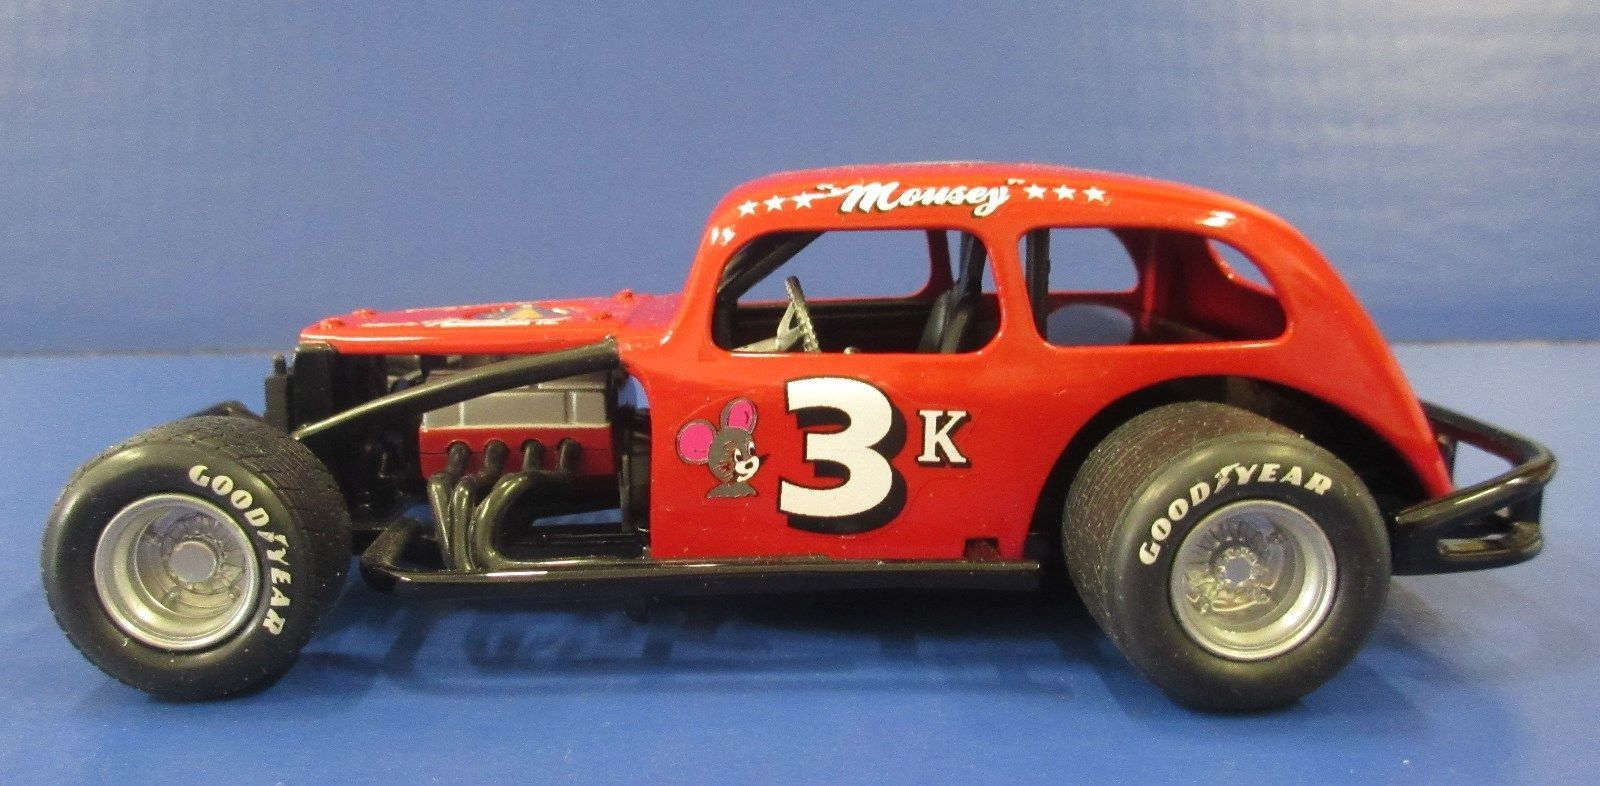 Dirt track race cars order cars dirt track cars old